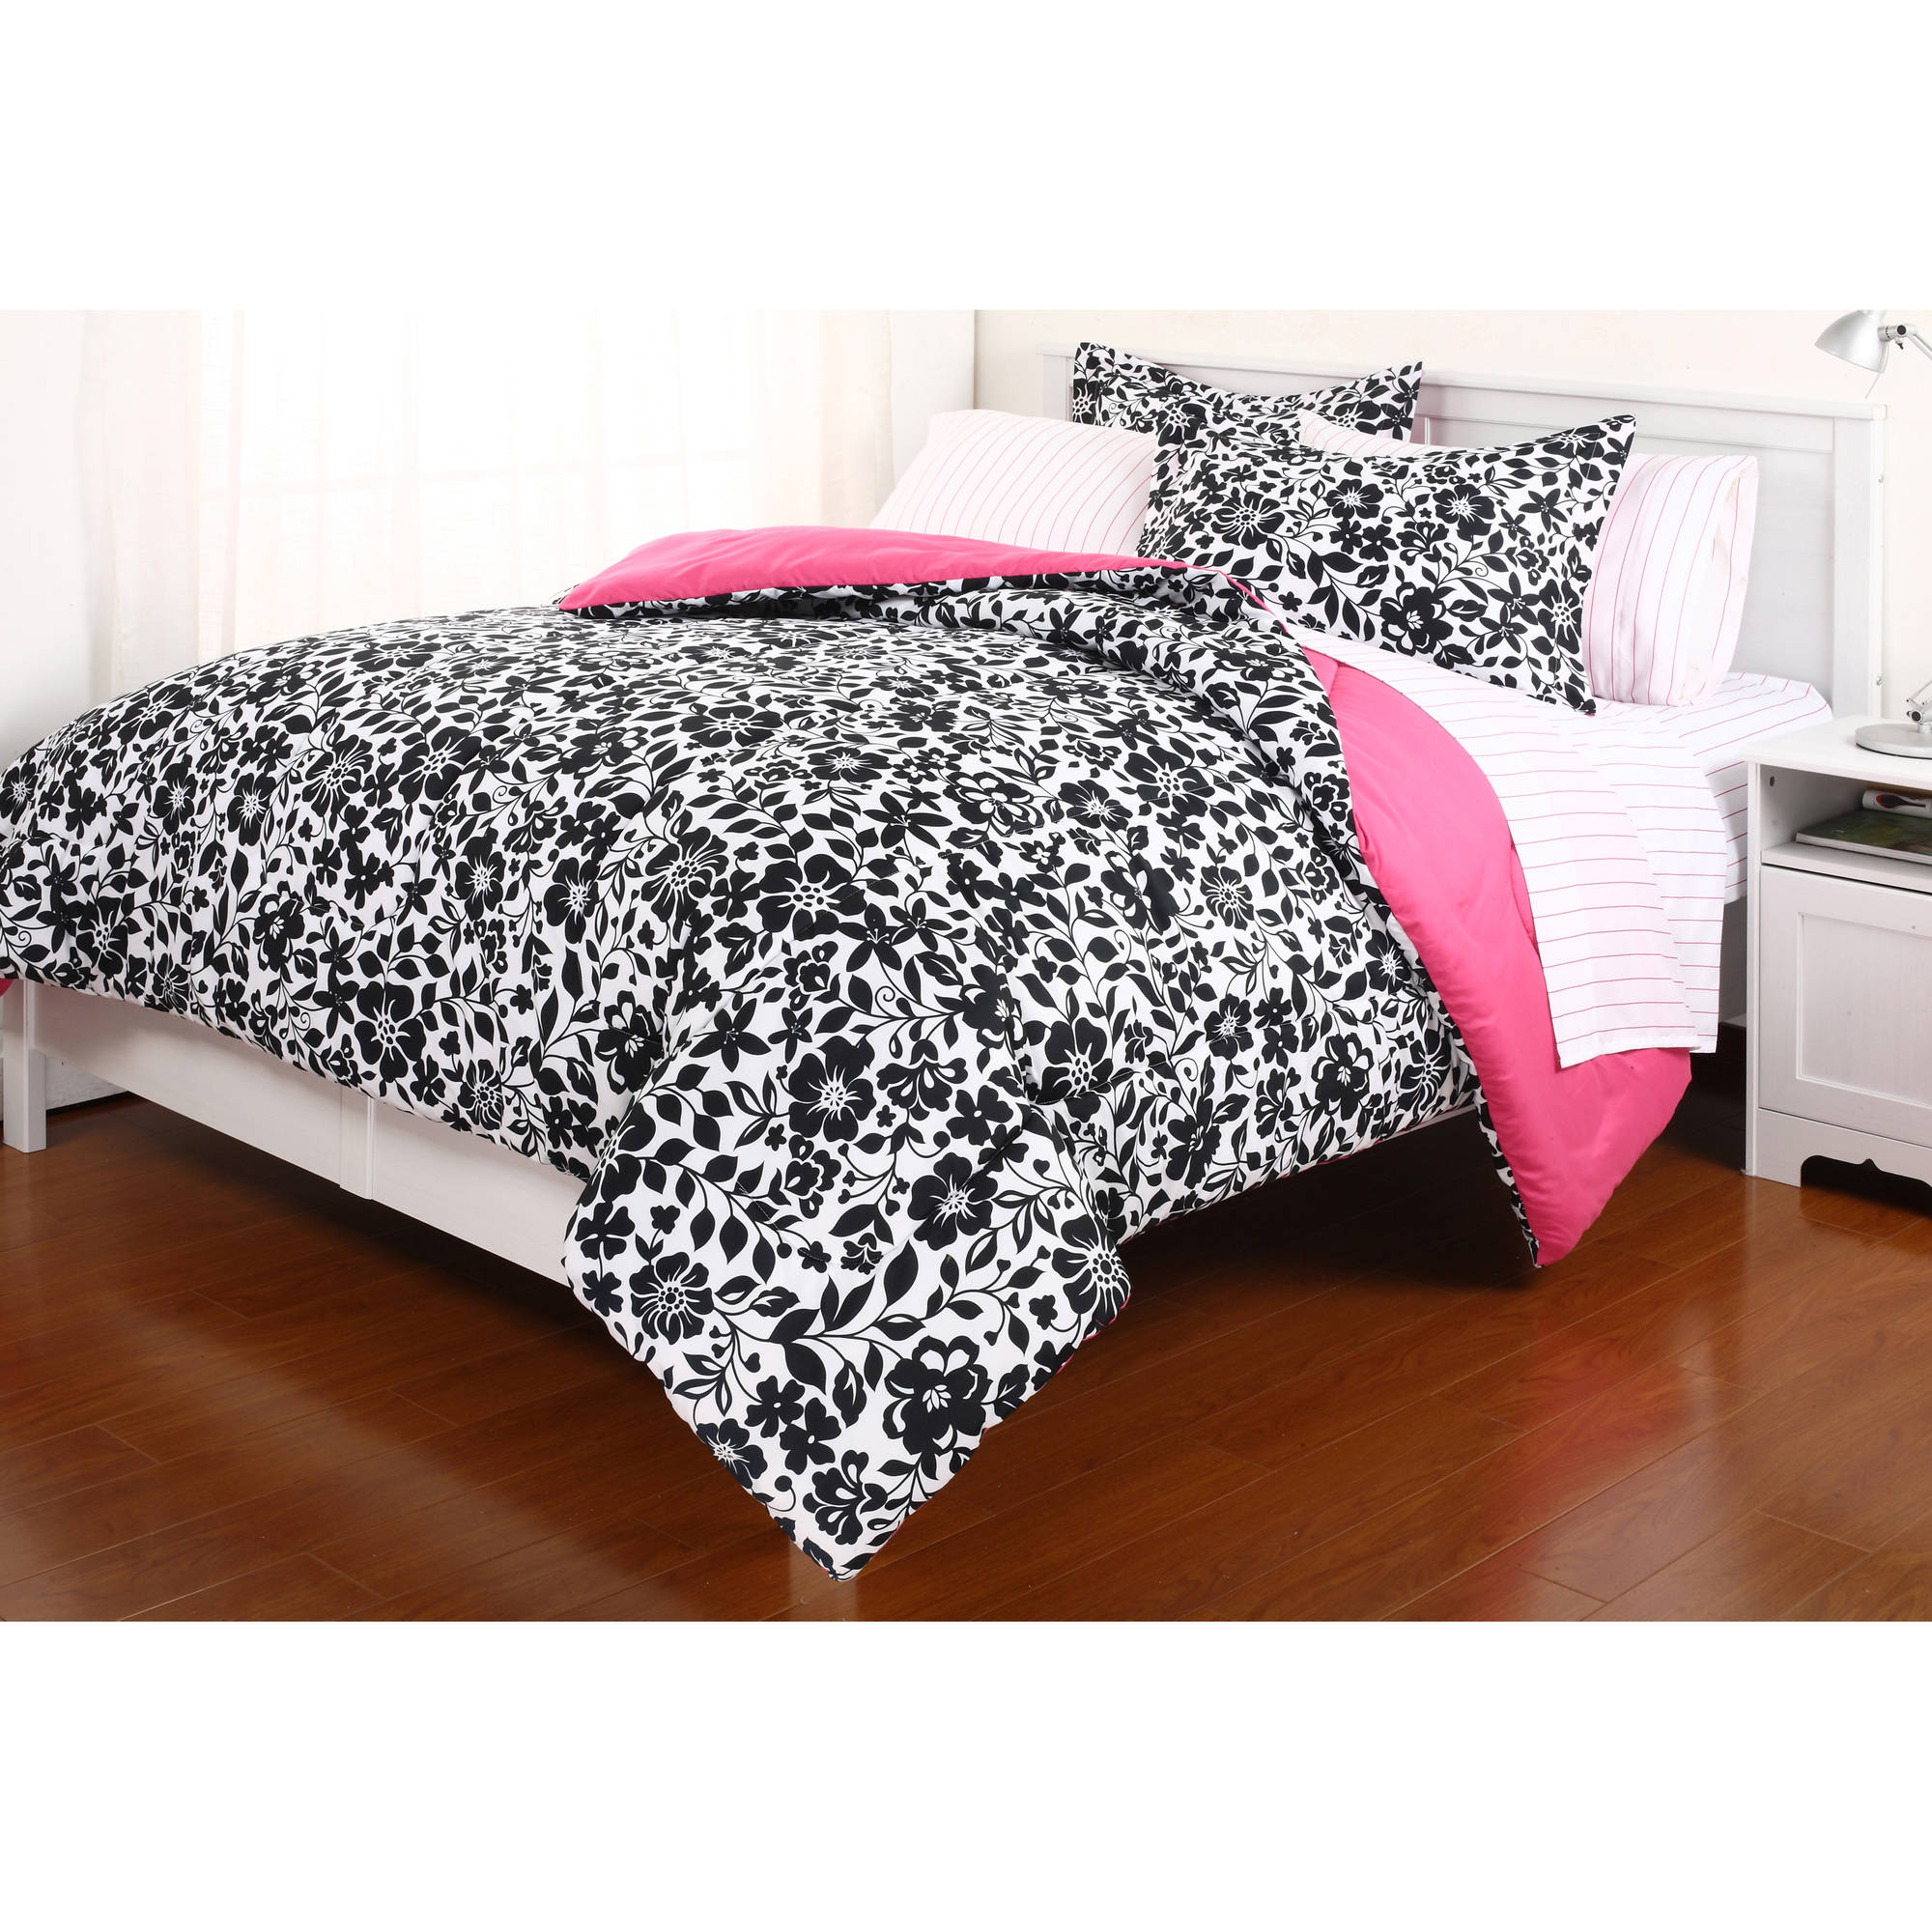 Bed sheet set black and white - Bed Sheet Set Black And White 59